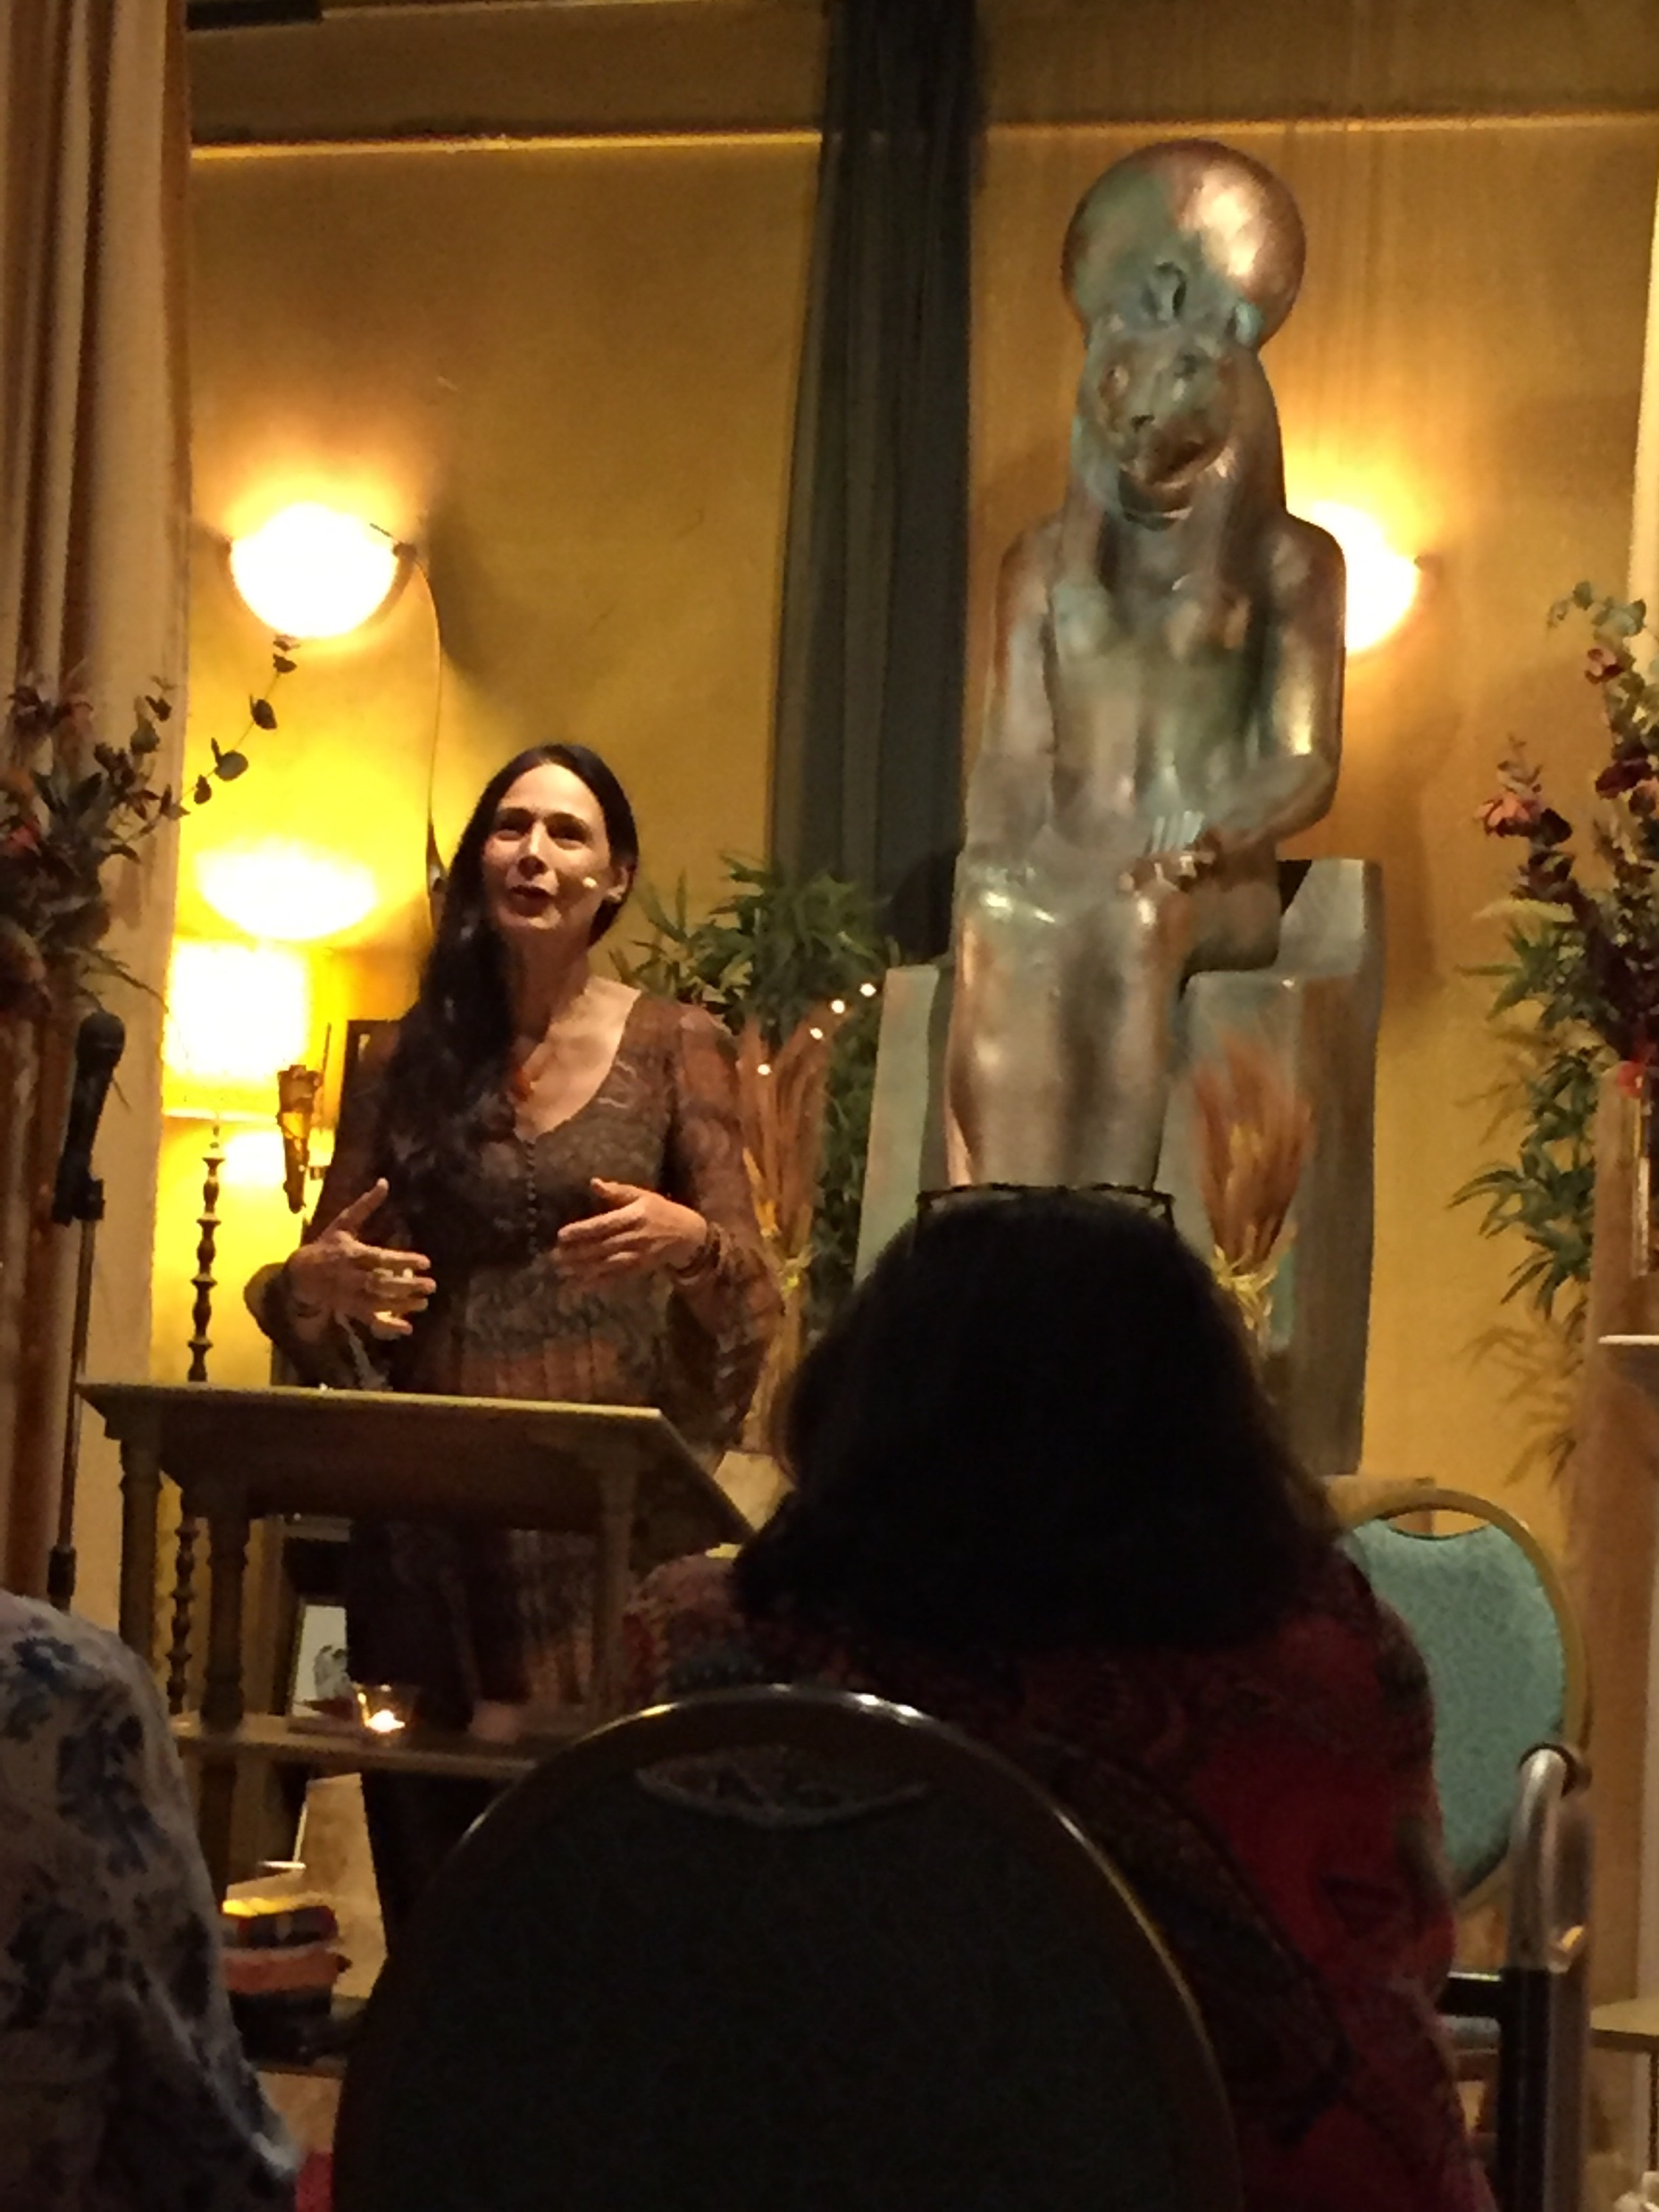 Raïna speaking at the Joseph Campbell RoundTable in Orange County, on October 7, 2017.